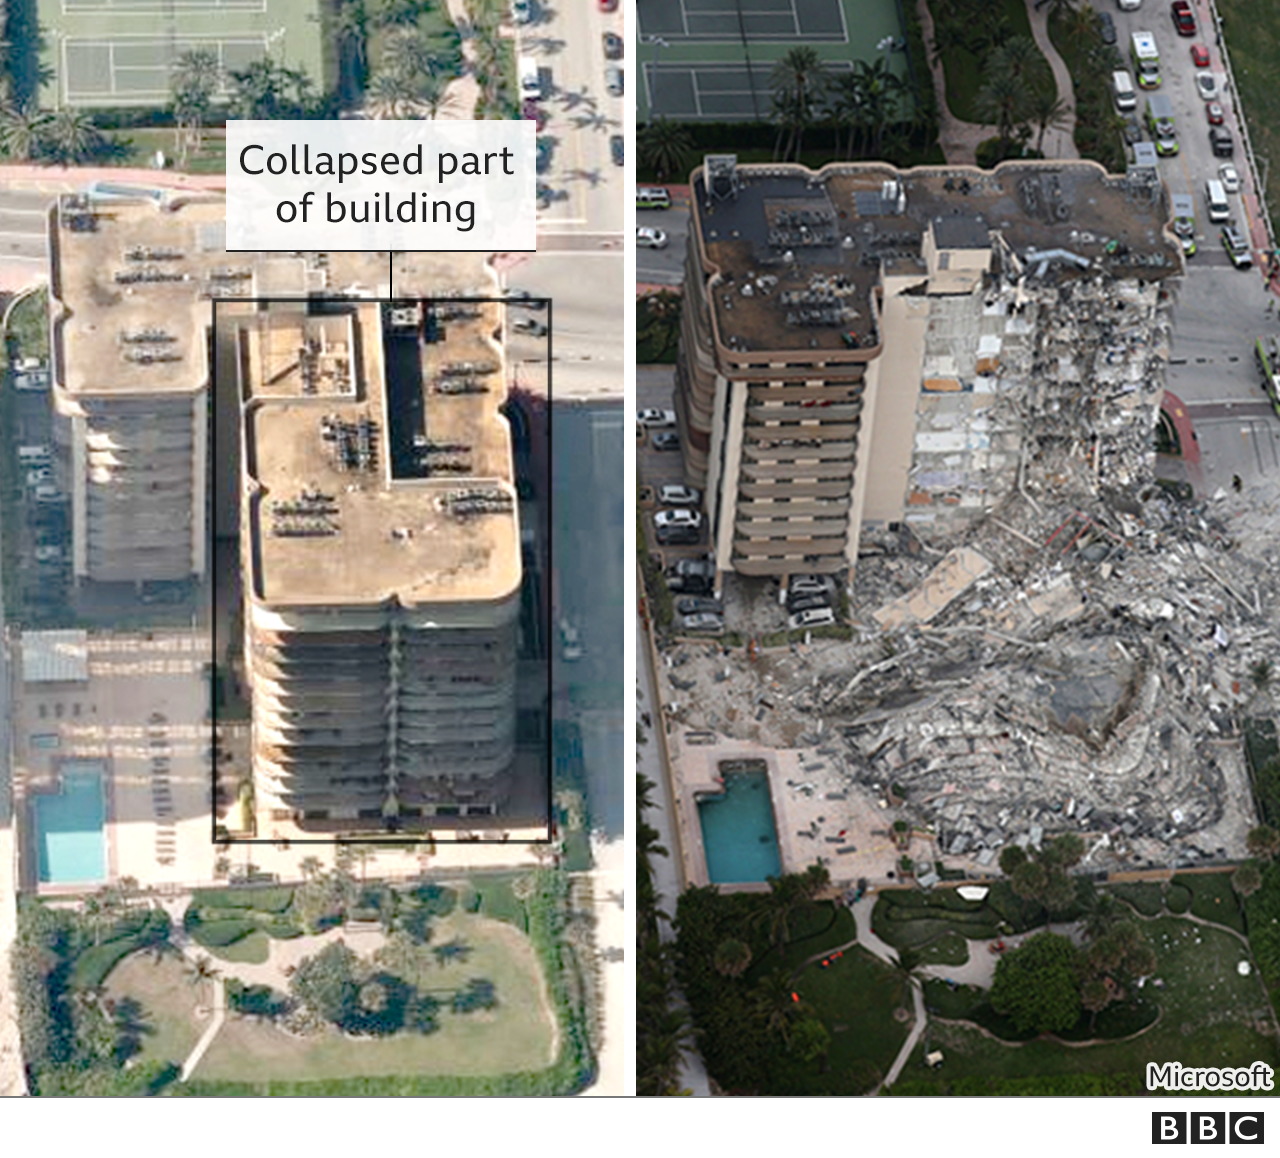 Composite image, comparing before and after part of the building in Surfside, Florida collapsed